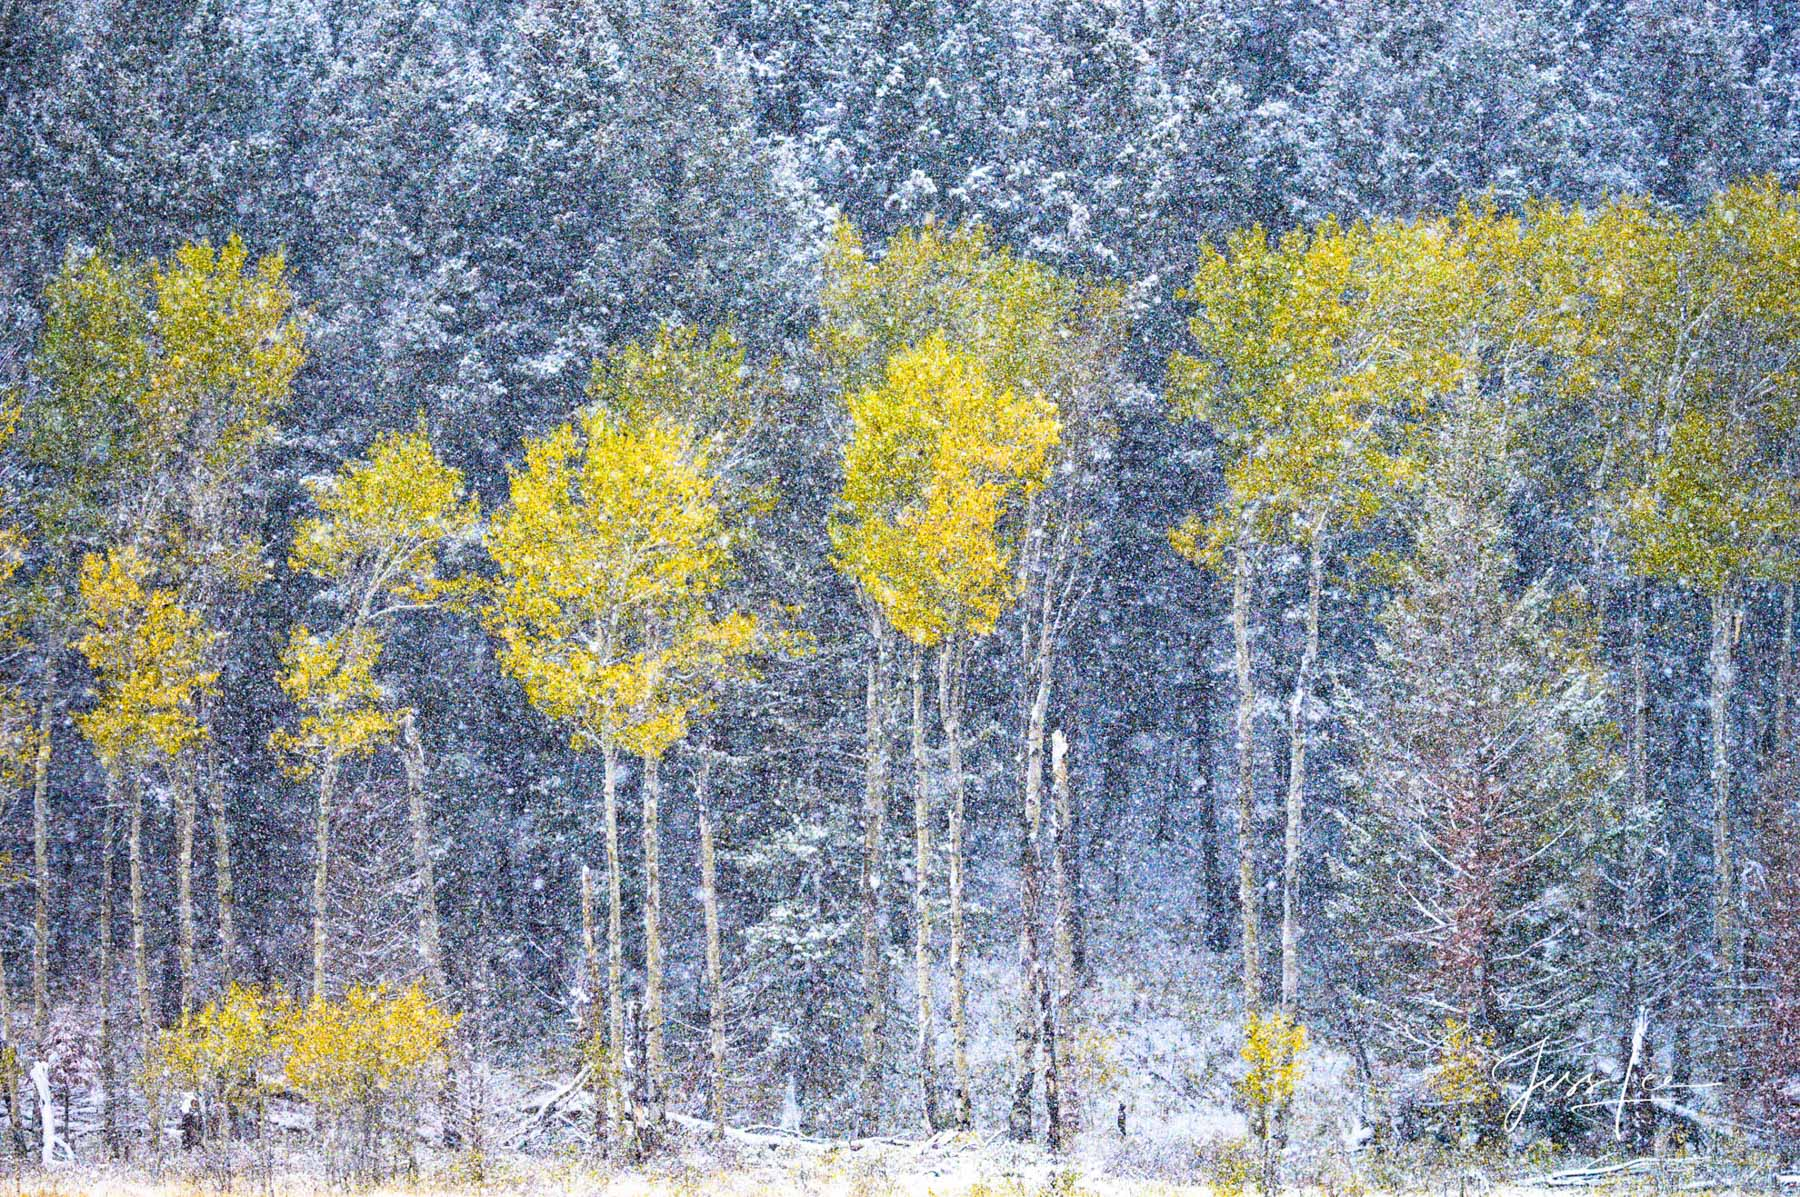 Limited Edition of 50 Exclusive high-resolution Museum Quality Fine Art Prints of Aspen trees on the edge of the Pine forest...